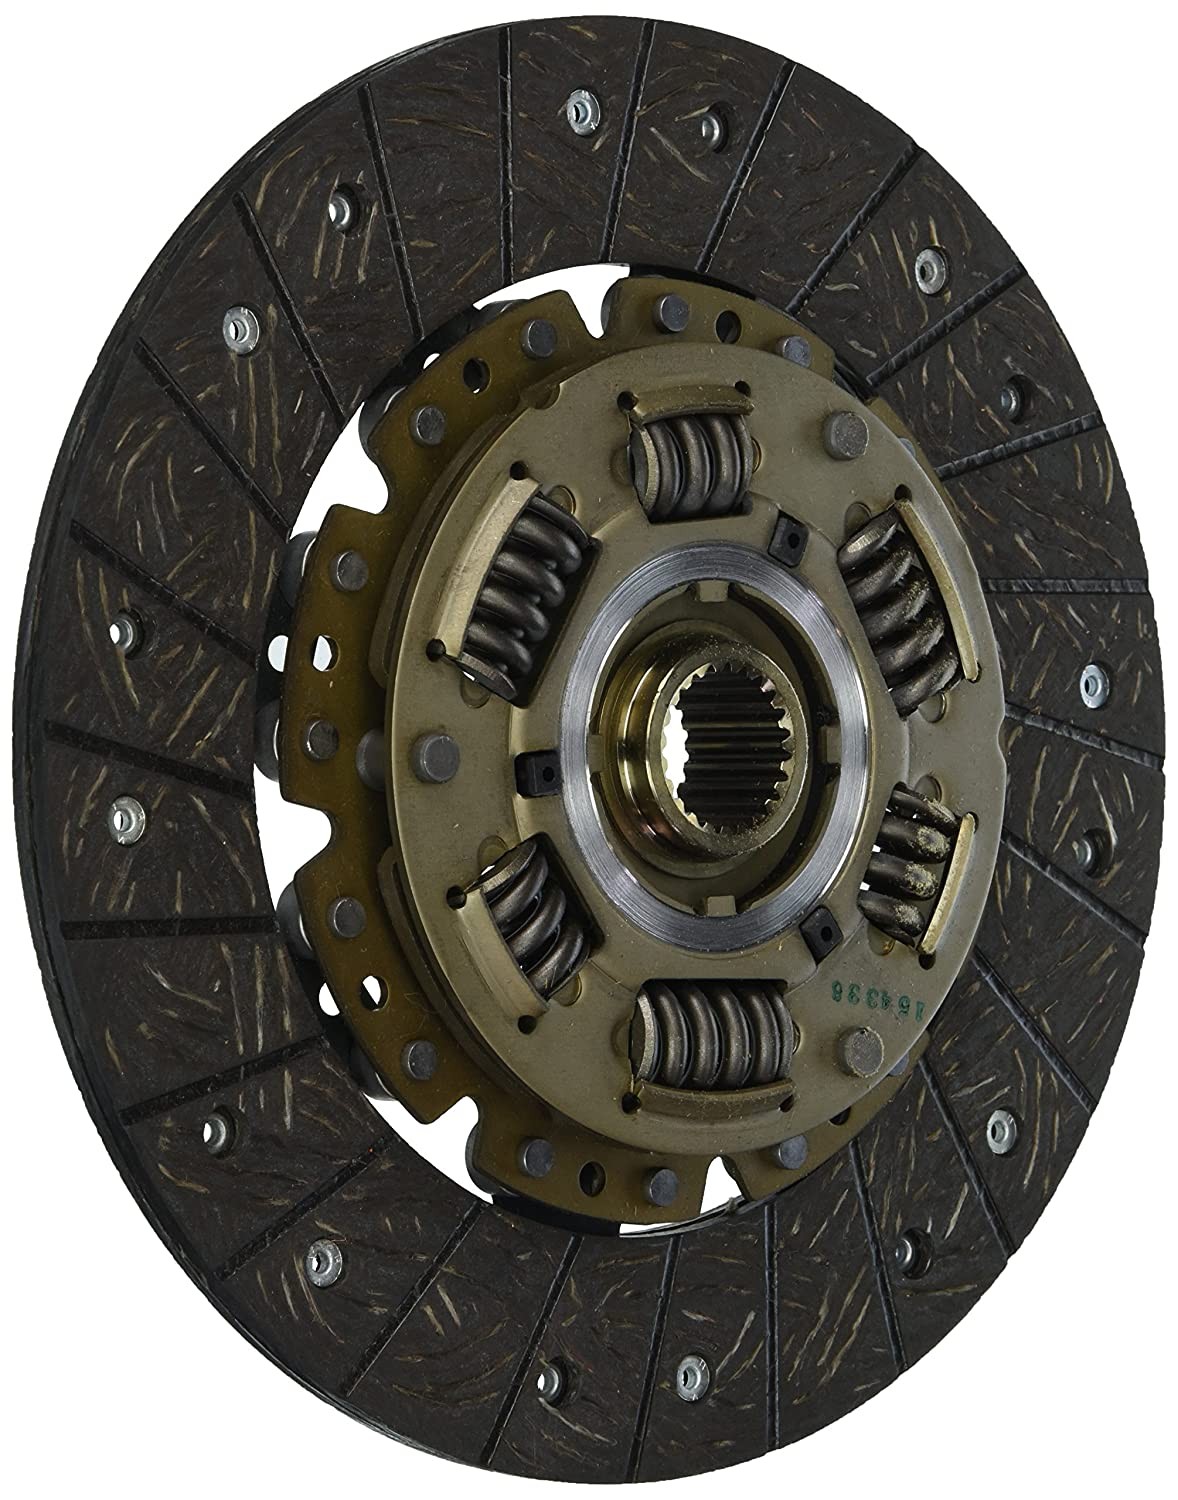 Centerforce 380944 I and II Clutch Friction Disc